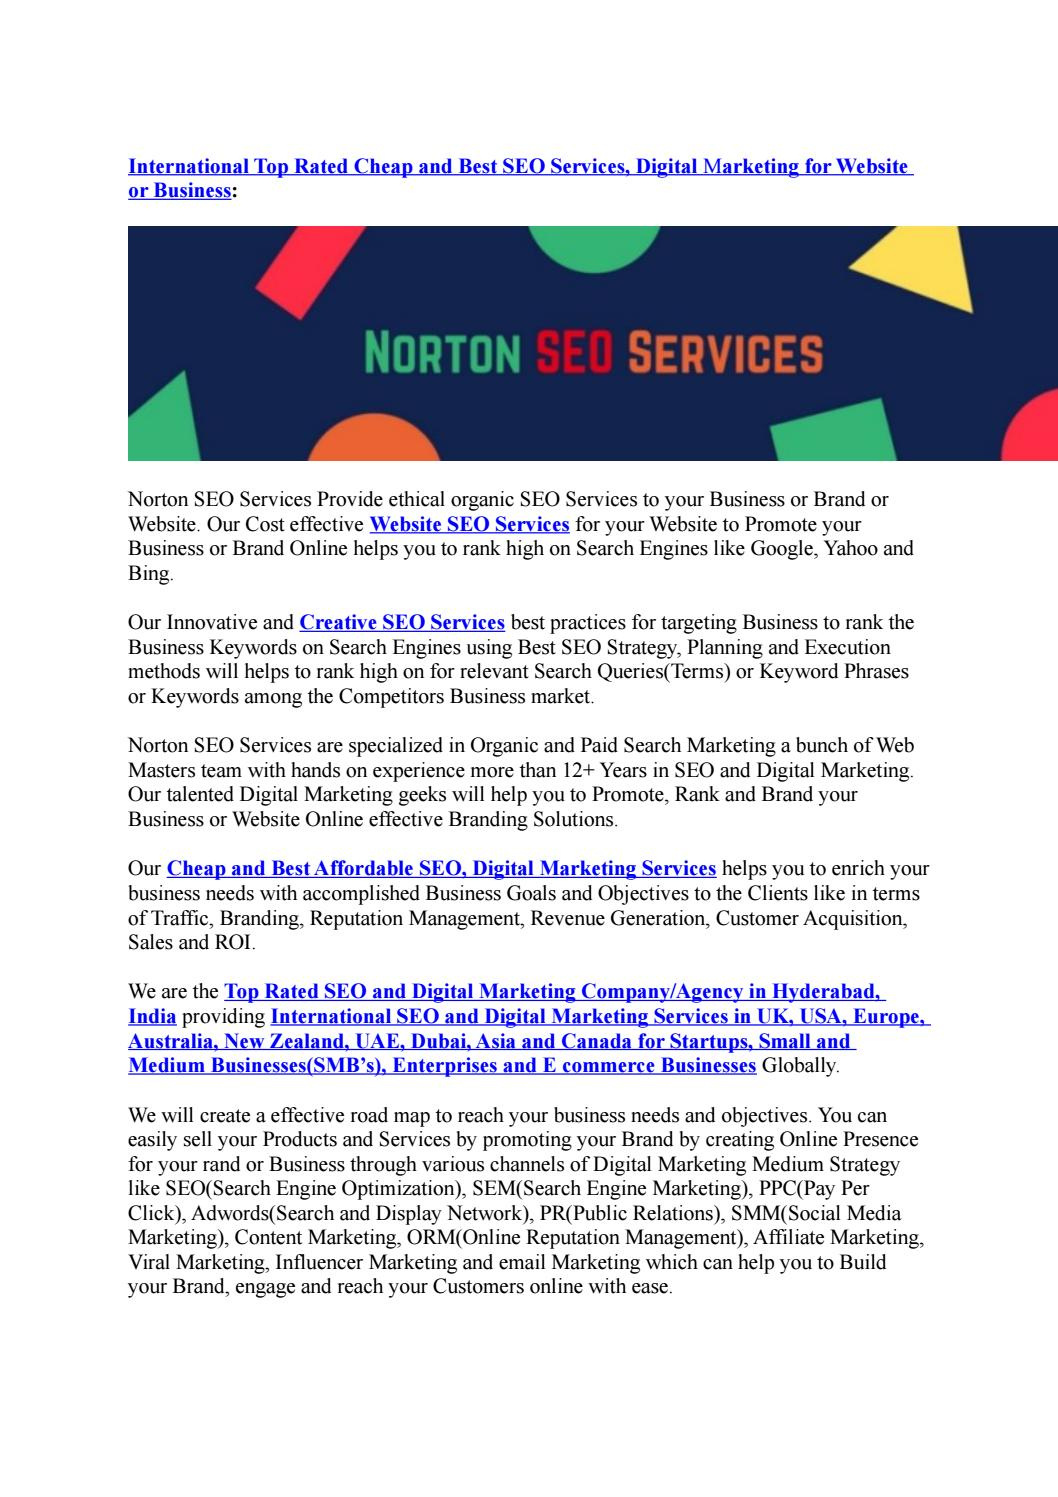 Top and International Best SEO and Digital Marketing